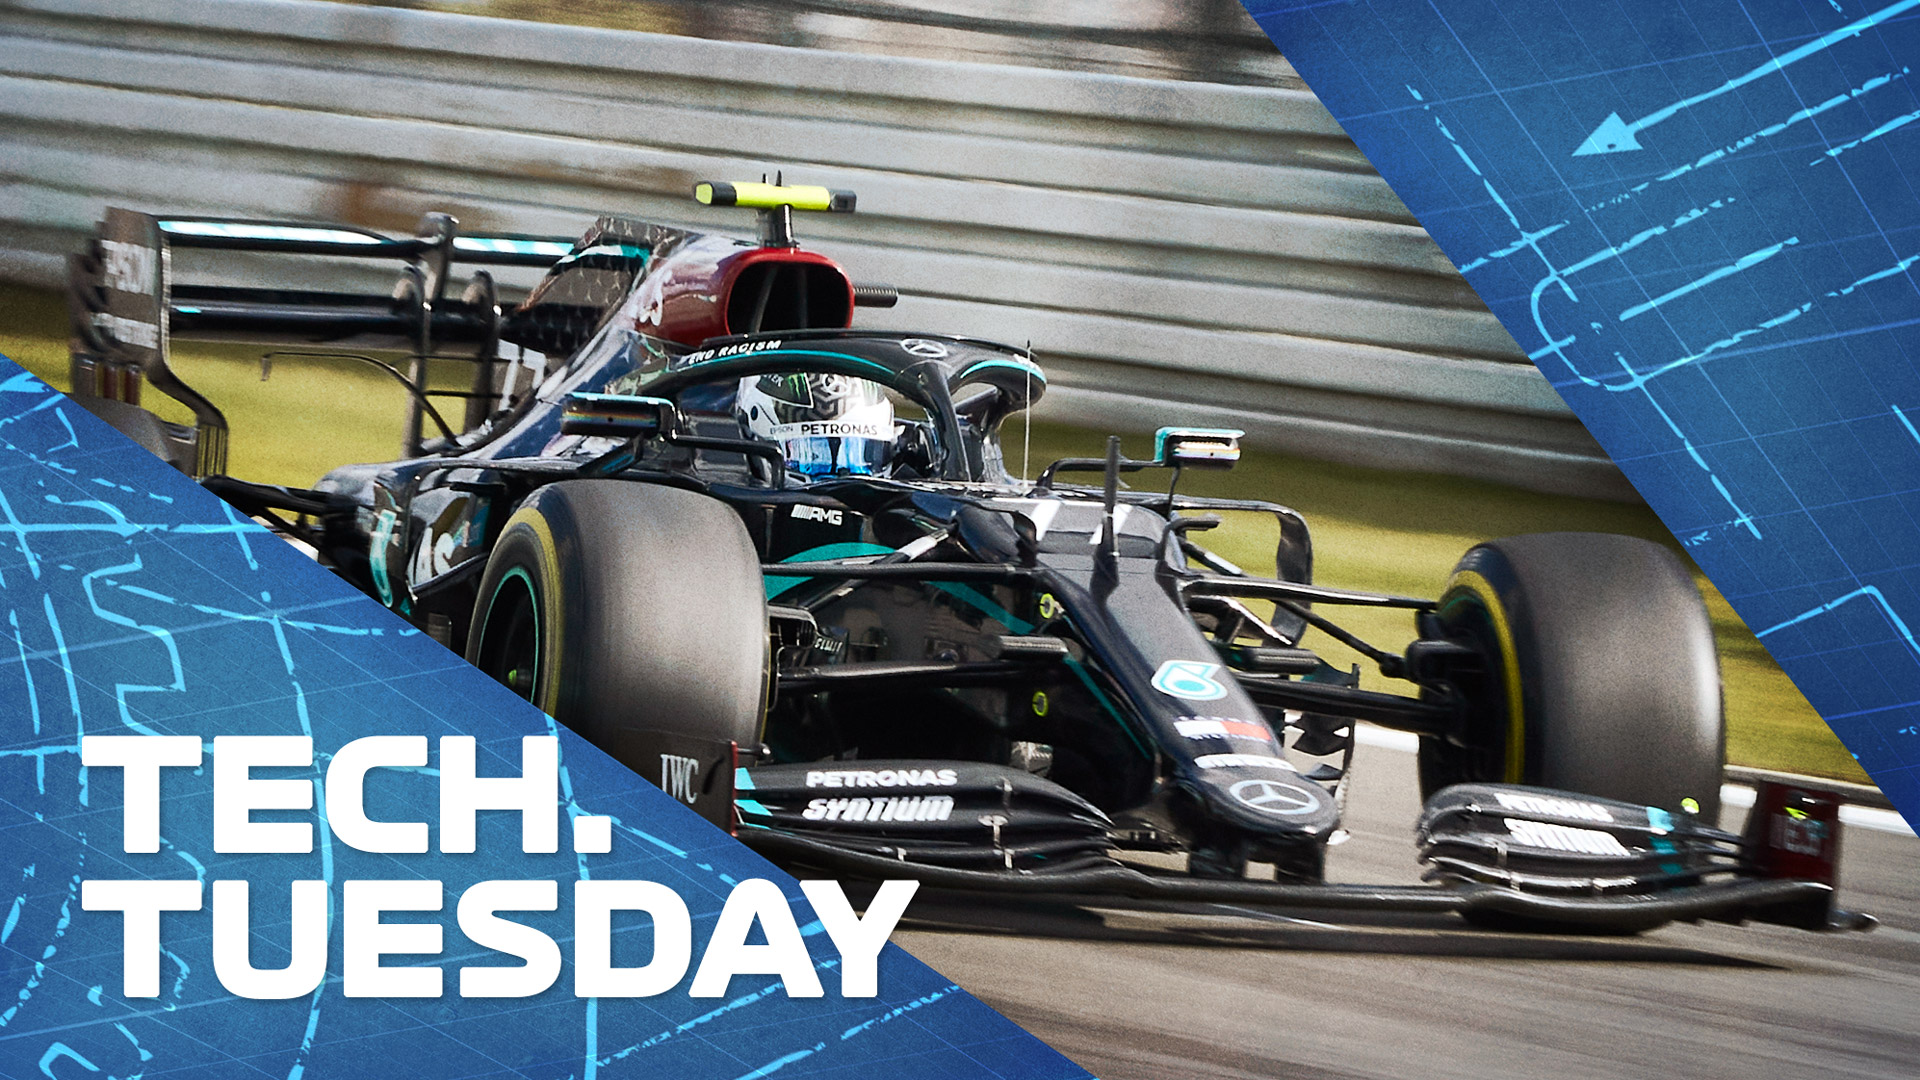 TECH TUESDAY: Why the 2021 aero tweaks combined with new tyres could shake up the order next year | Formula 1®